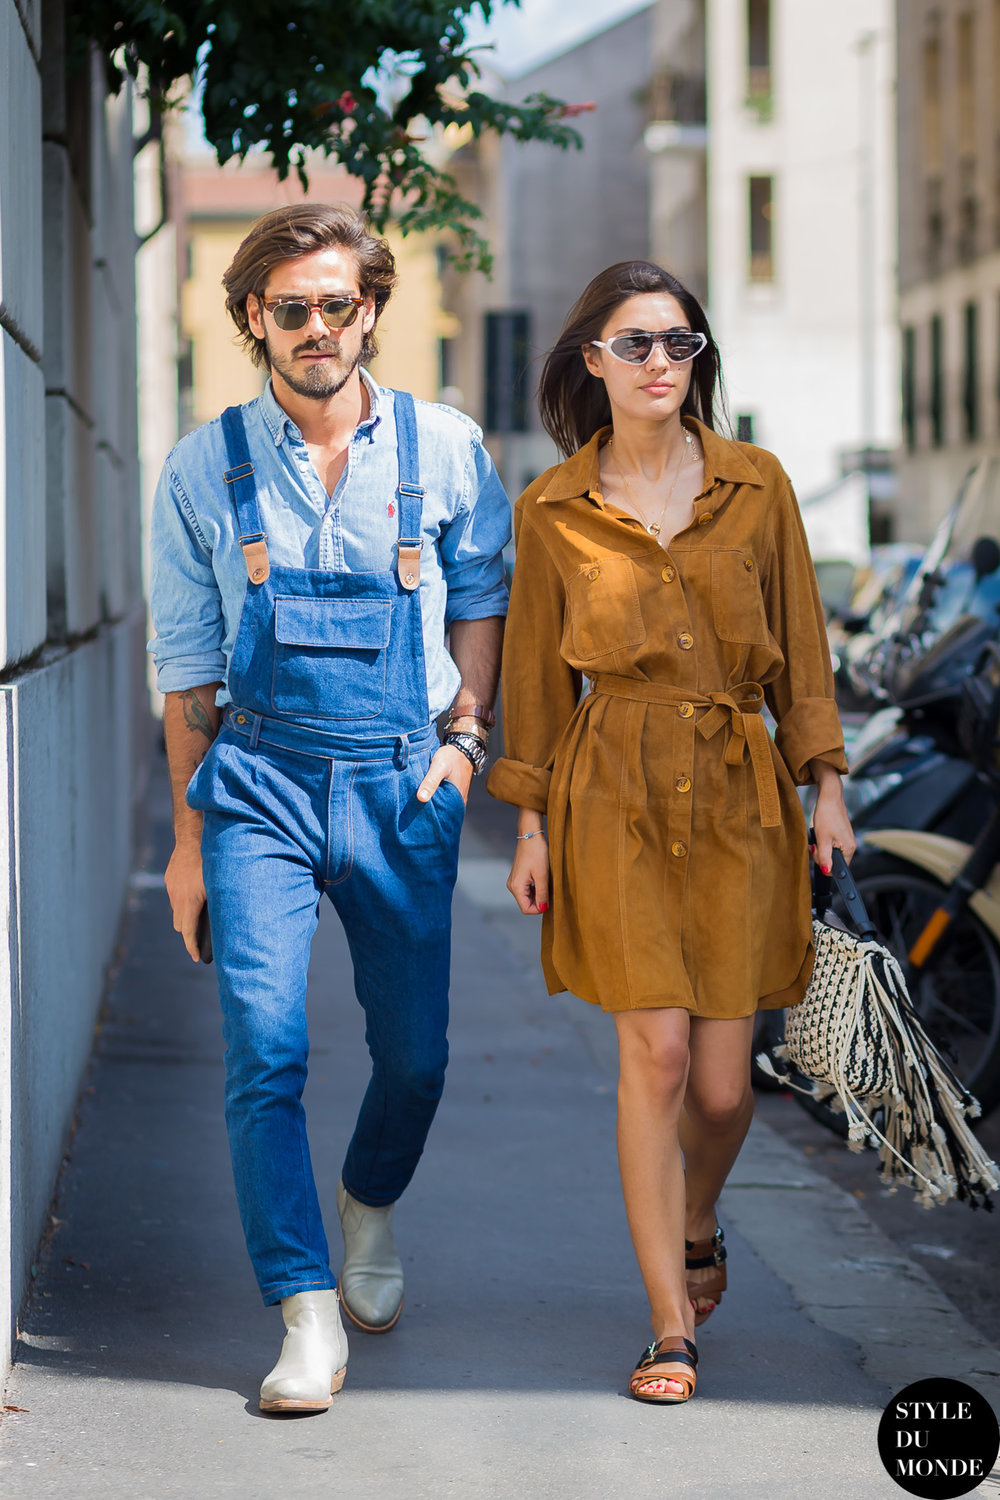 Patricia-Manfield-and-Giotto-Calendoli-by-STYLEDUMONDE-Street-Style-Fashion-Photography_MG_7944.jpg